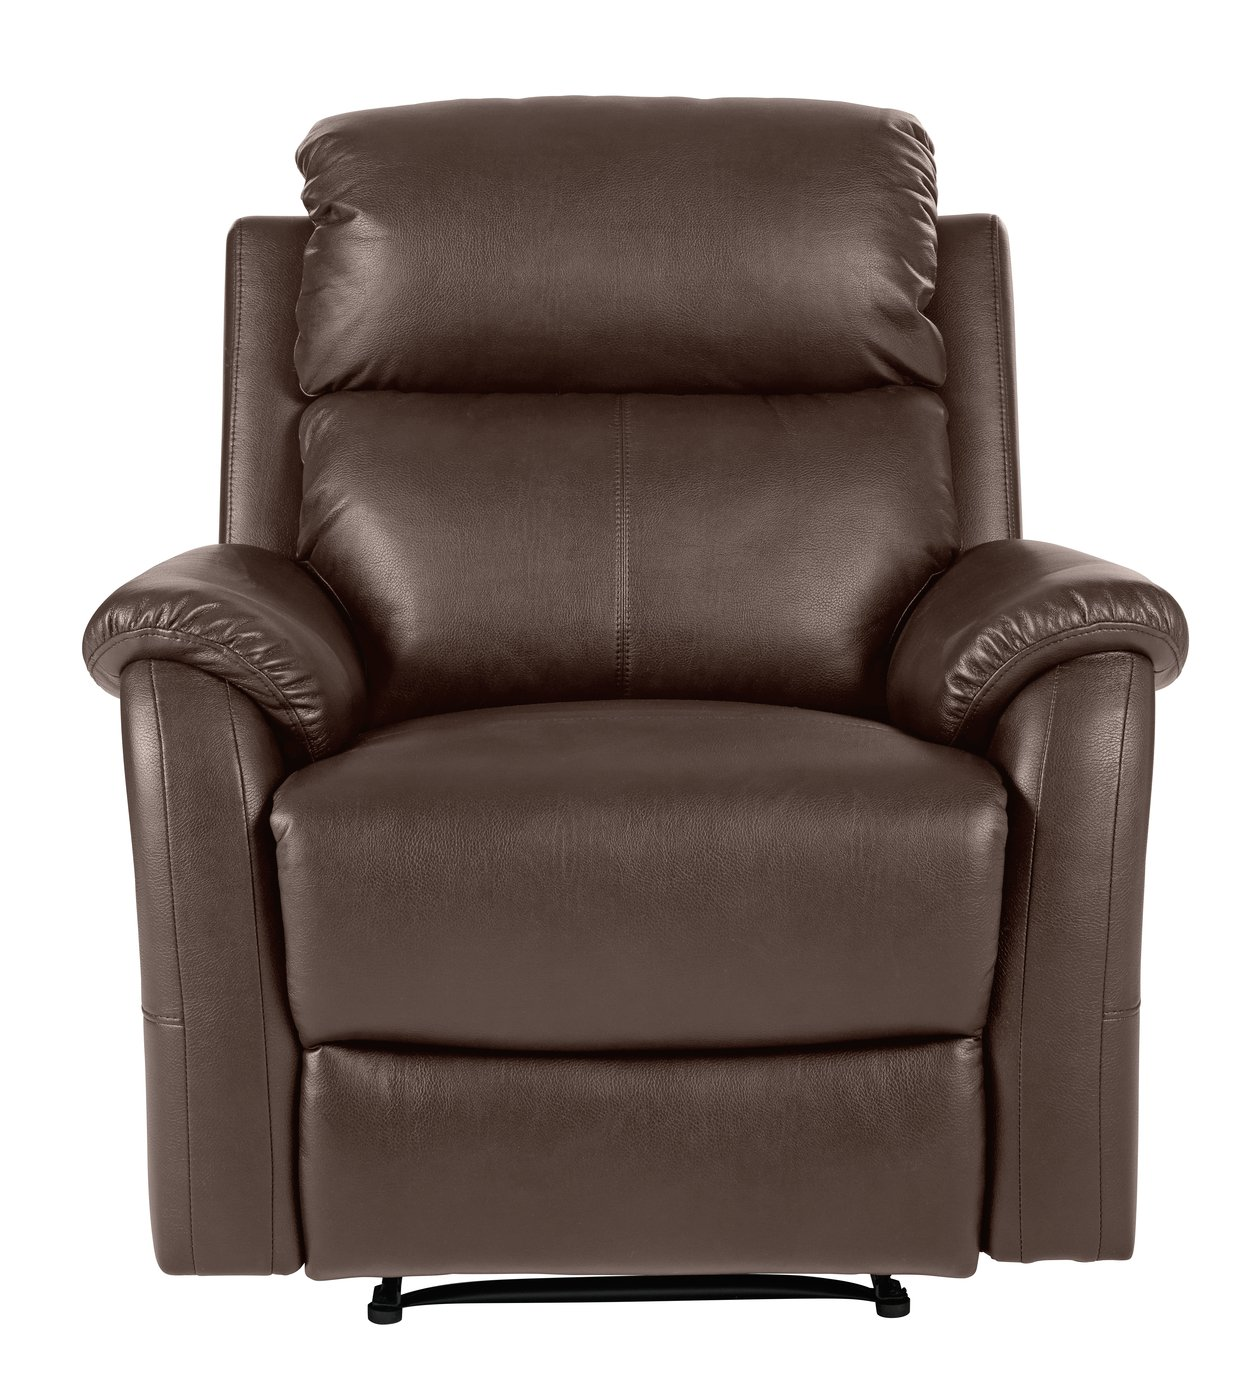 electric recliner chairs argos white cane dining room buy home tyler leather manual chair chocolate click to zoom